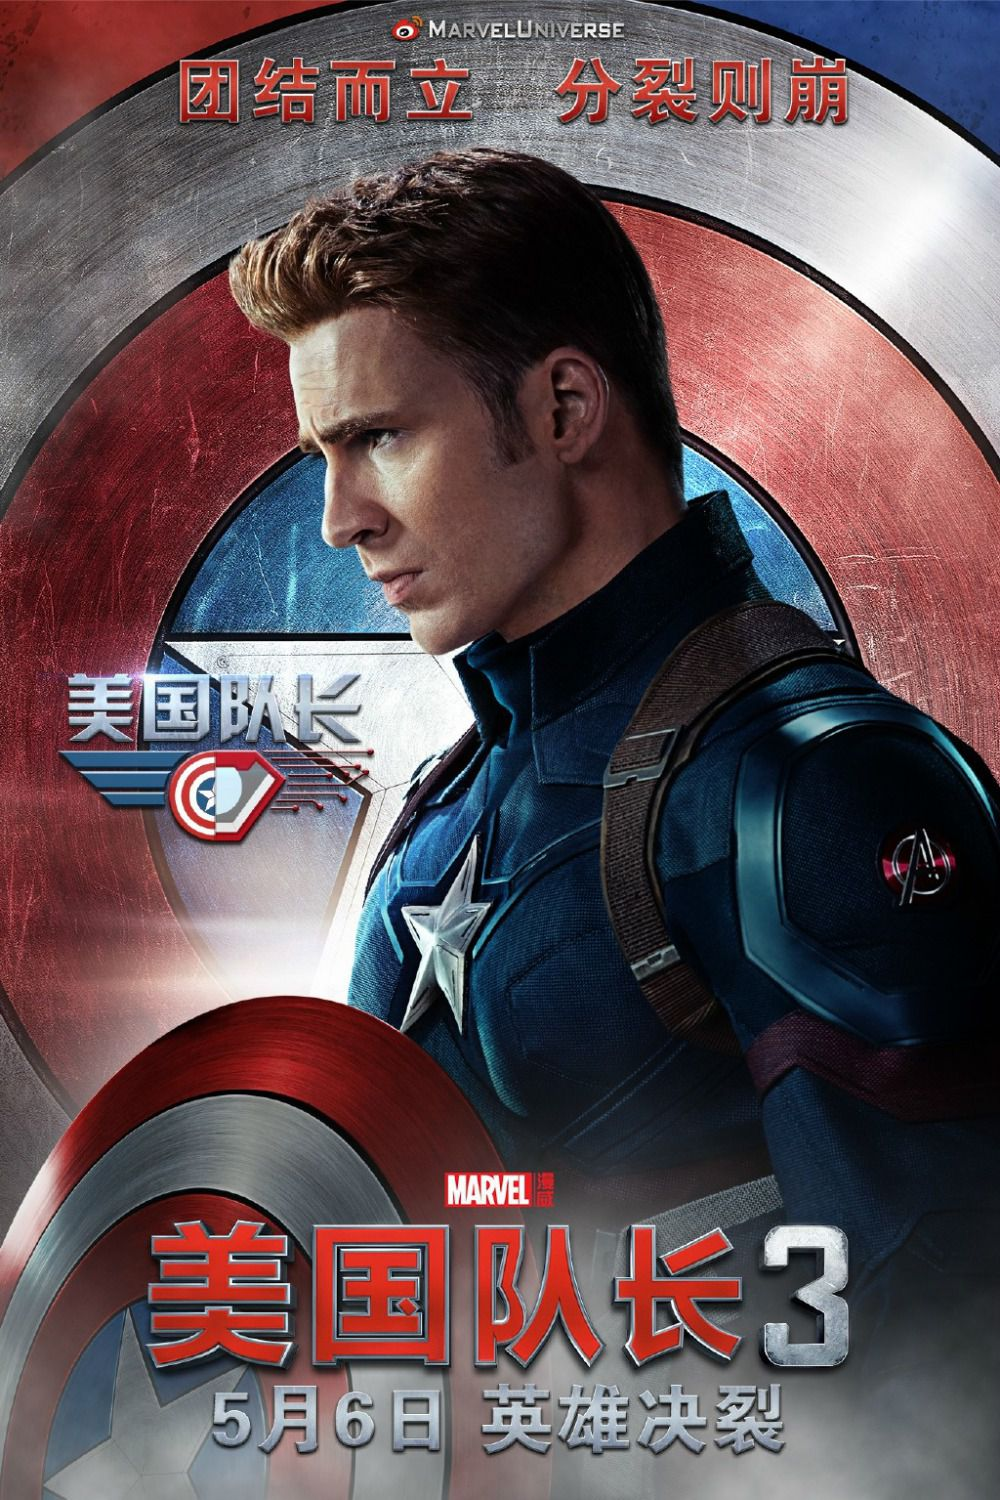 Captain America 3 - Civil War - Capitan America -  Steve Rogers (Chris Evans)